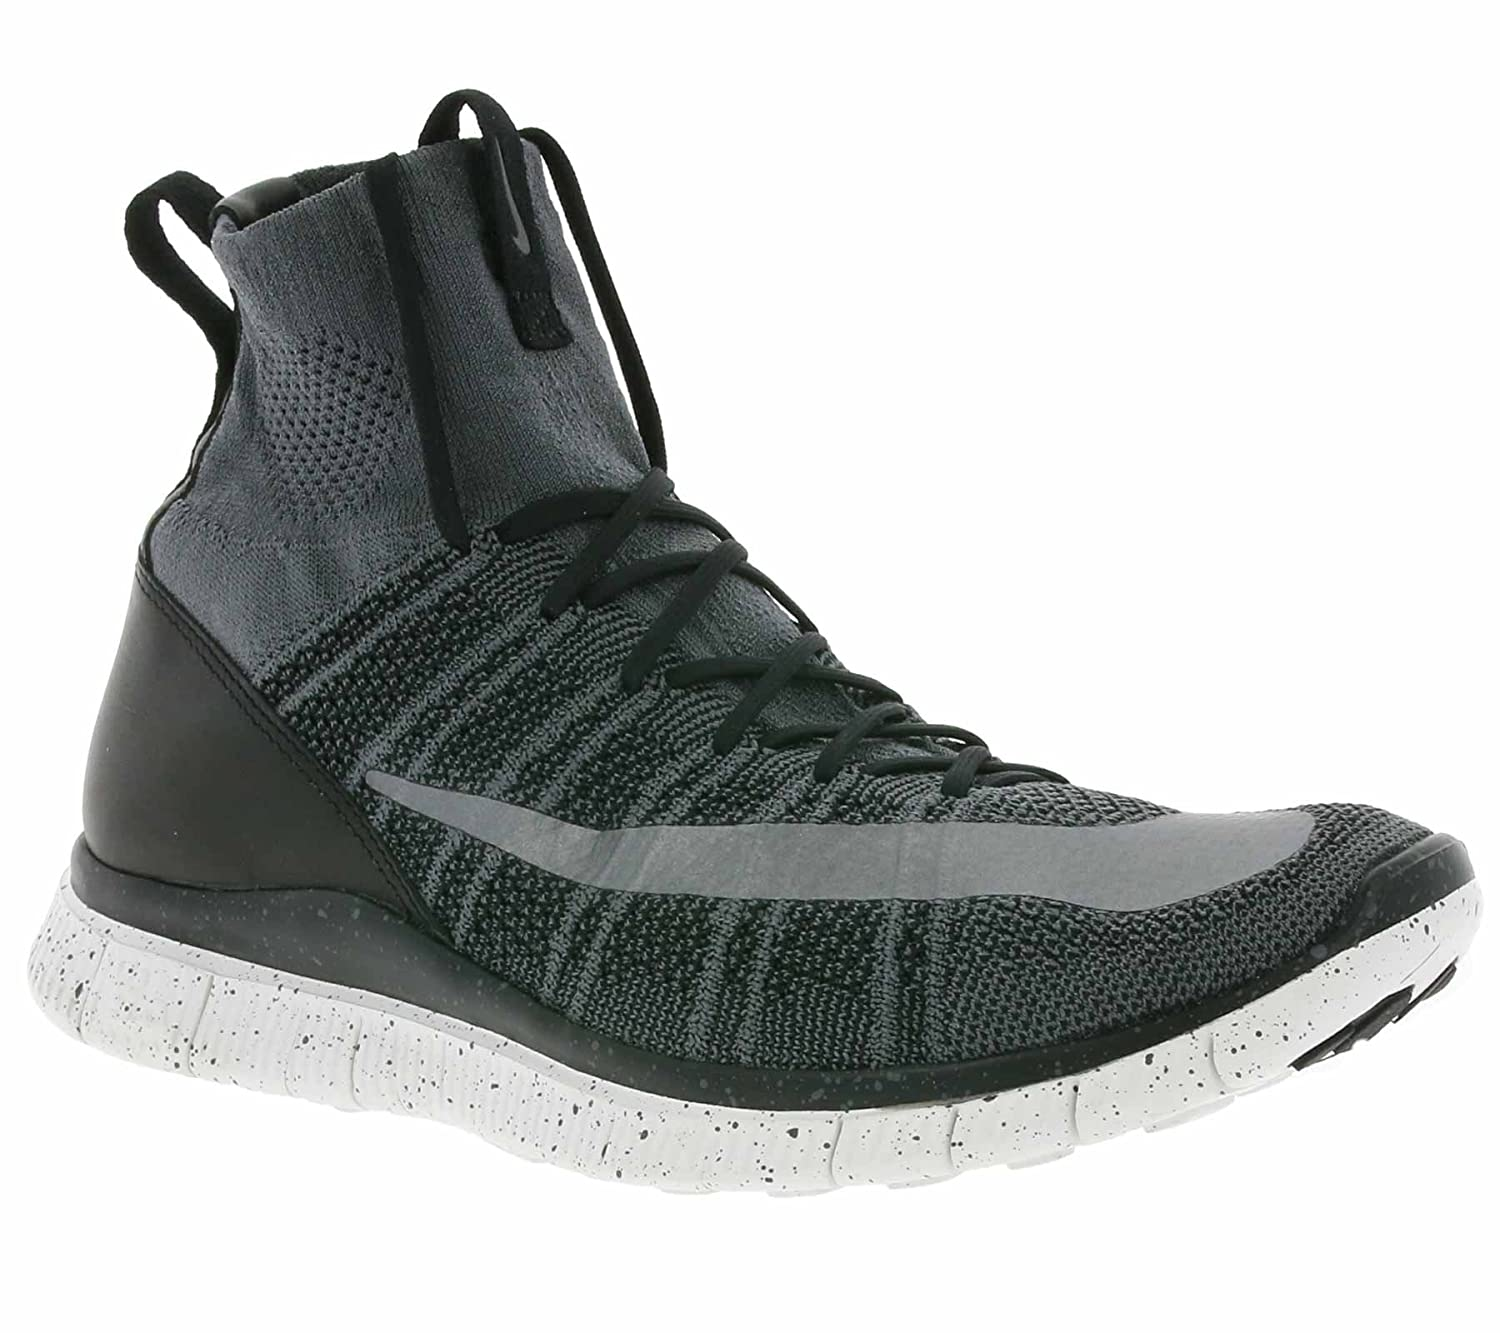 cheap for discount 2fd1f 53094 Amazon.com   NIKE Free Flyknit Mercurial CR7 805554-004  Grey Black White Silver Men s Shoes (Size 10)   Road Running